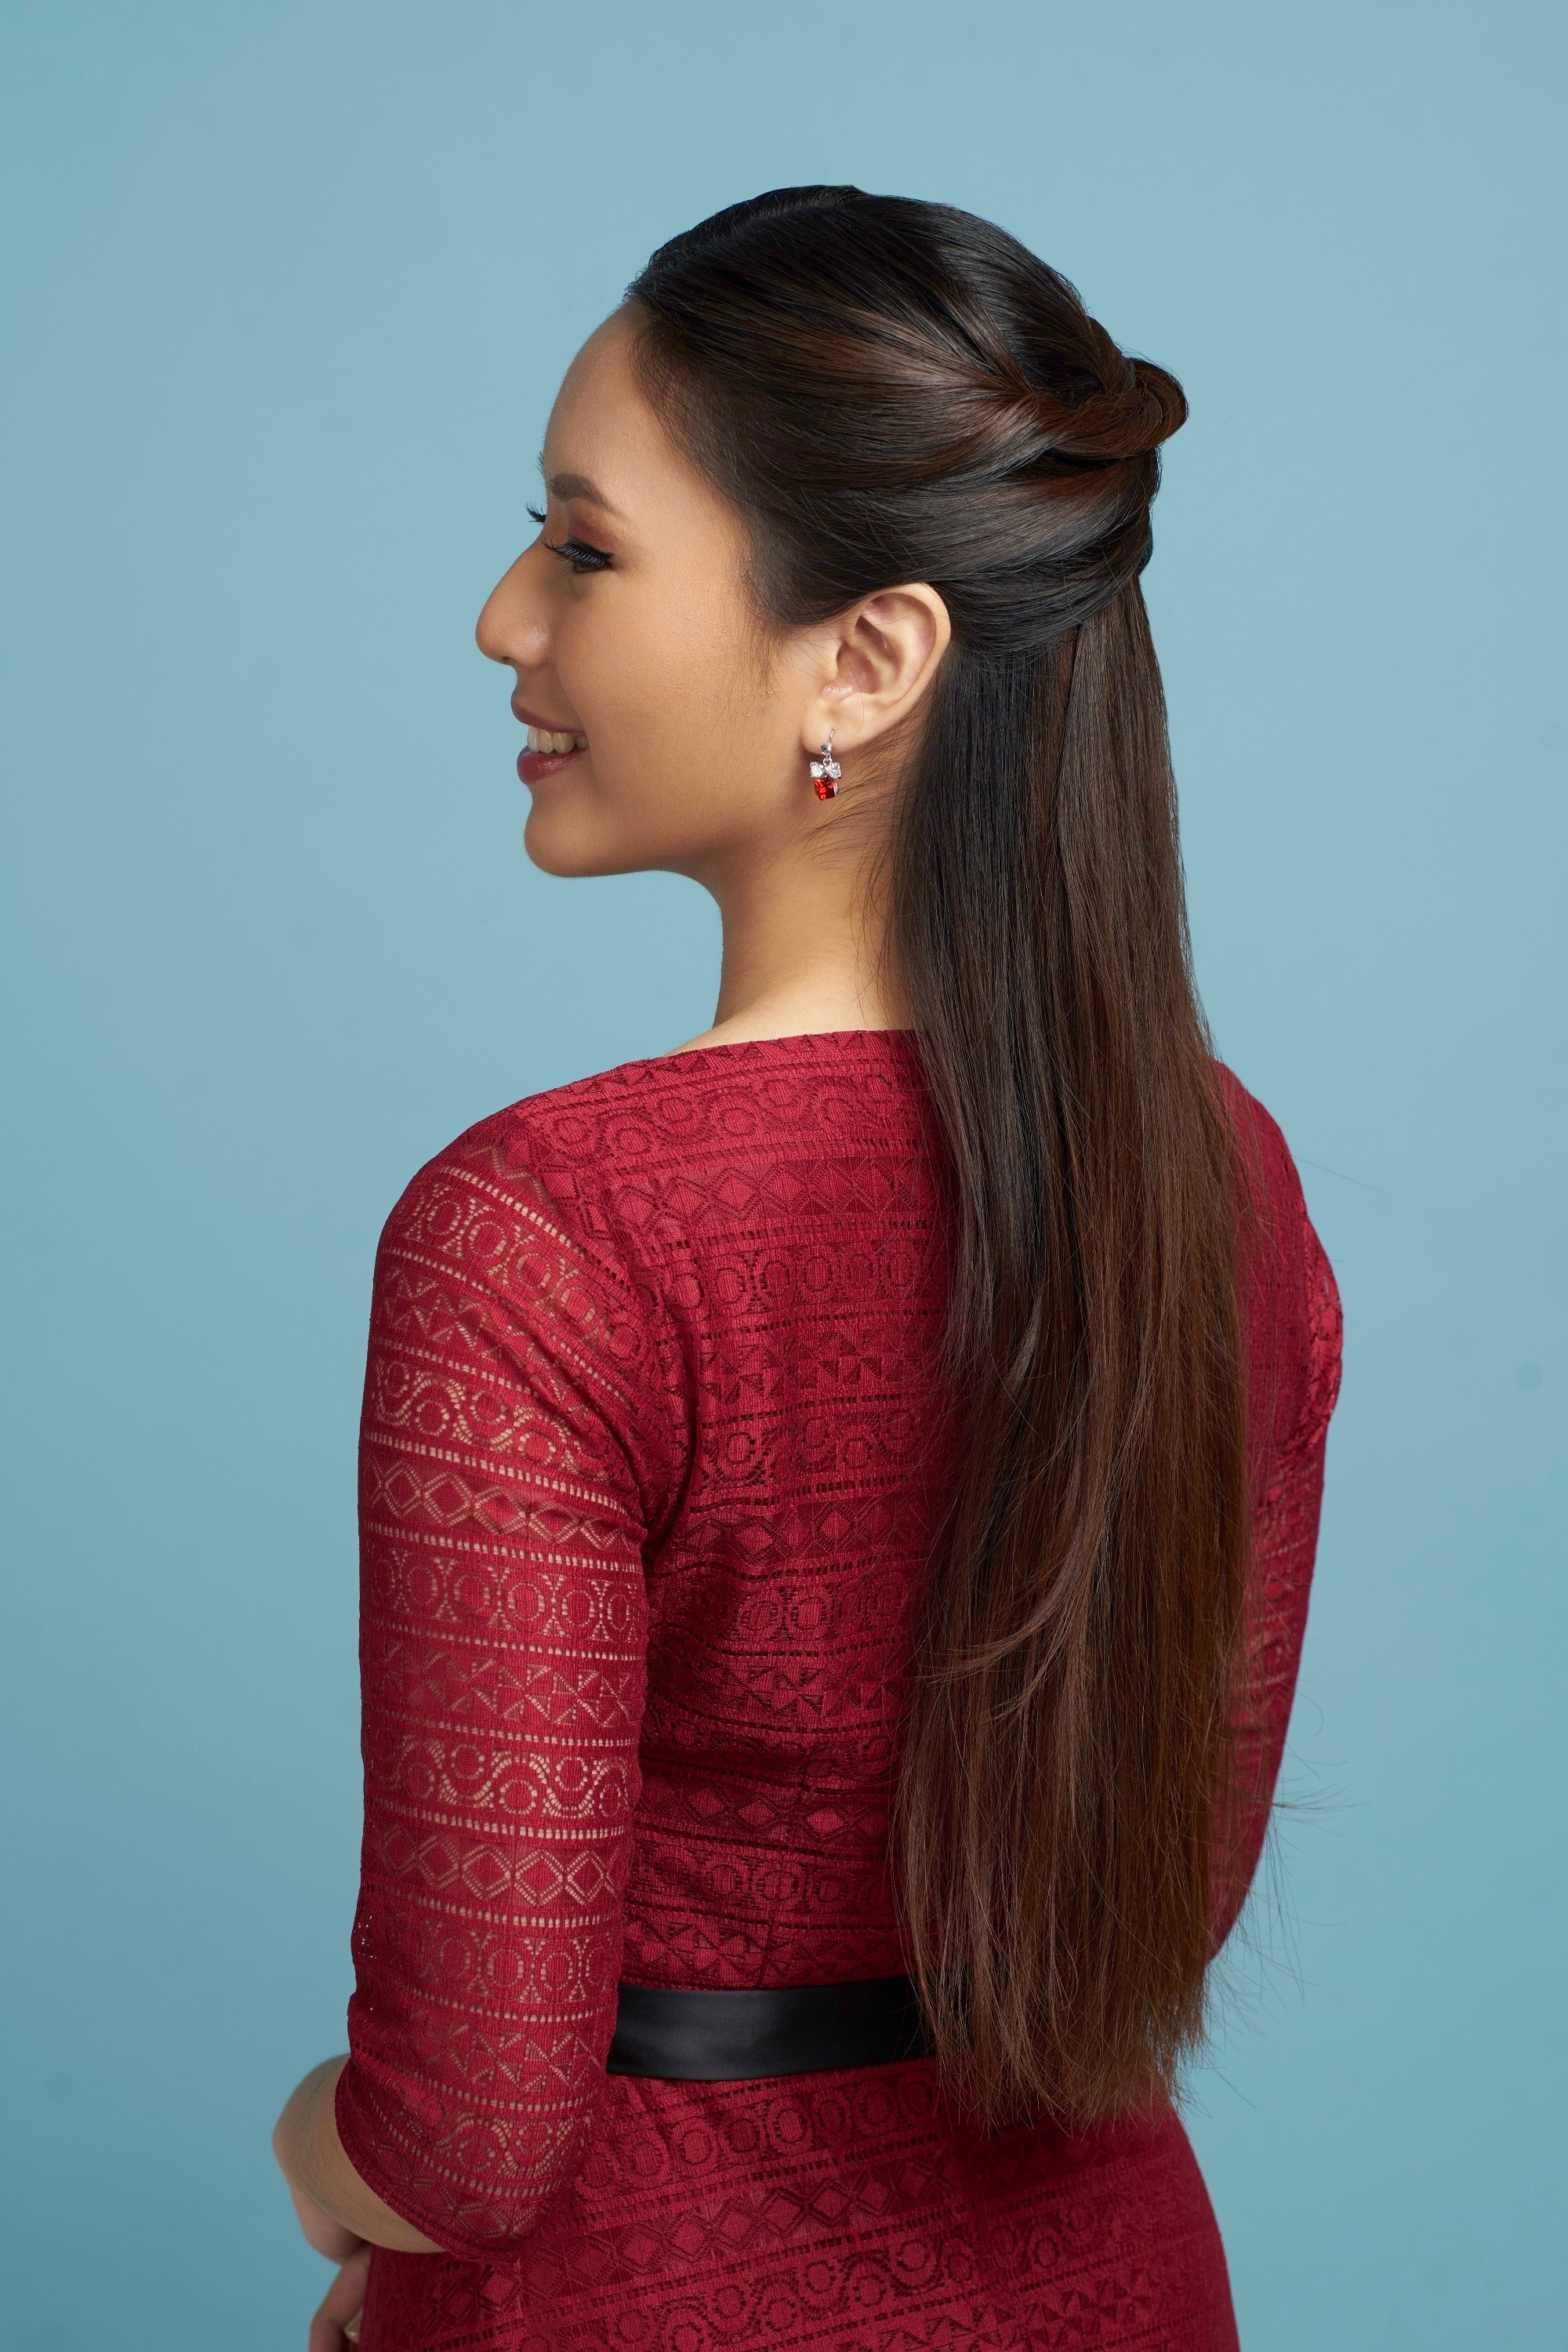 V-shape haircut: Asian woman with long dark hair in half up criss cross hairstyle